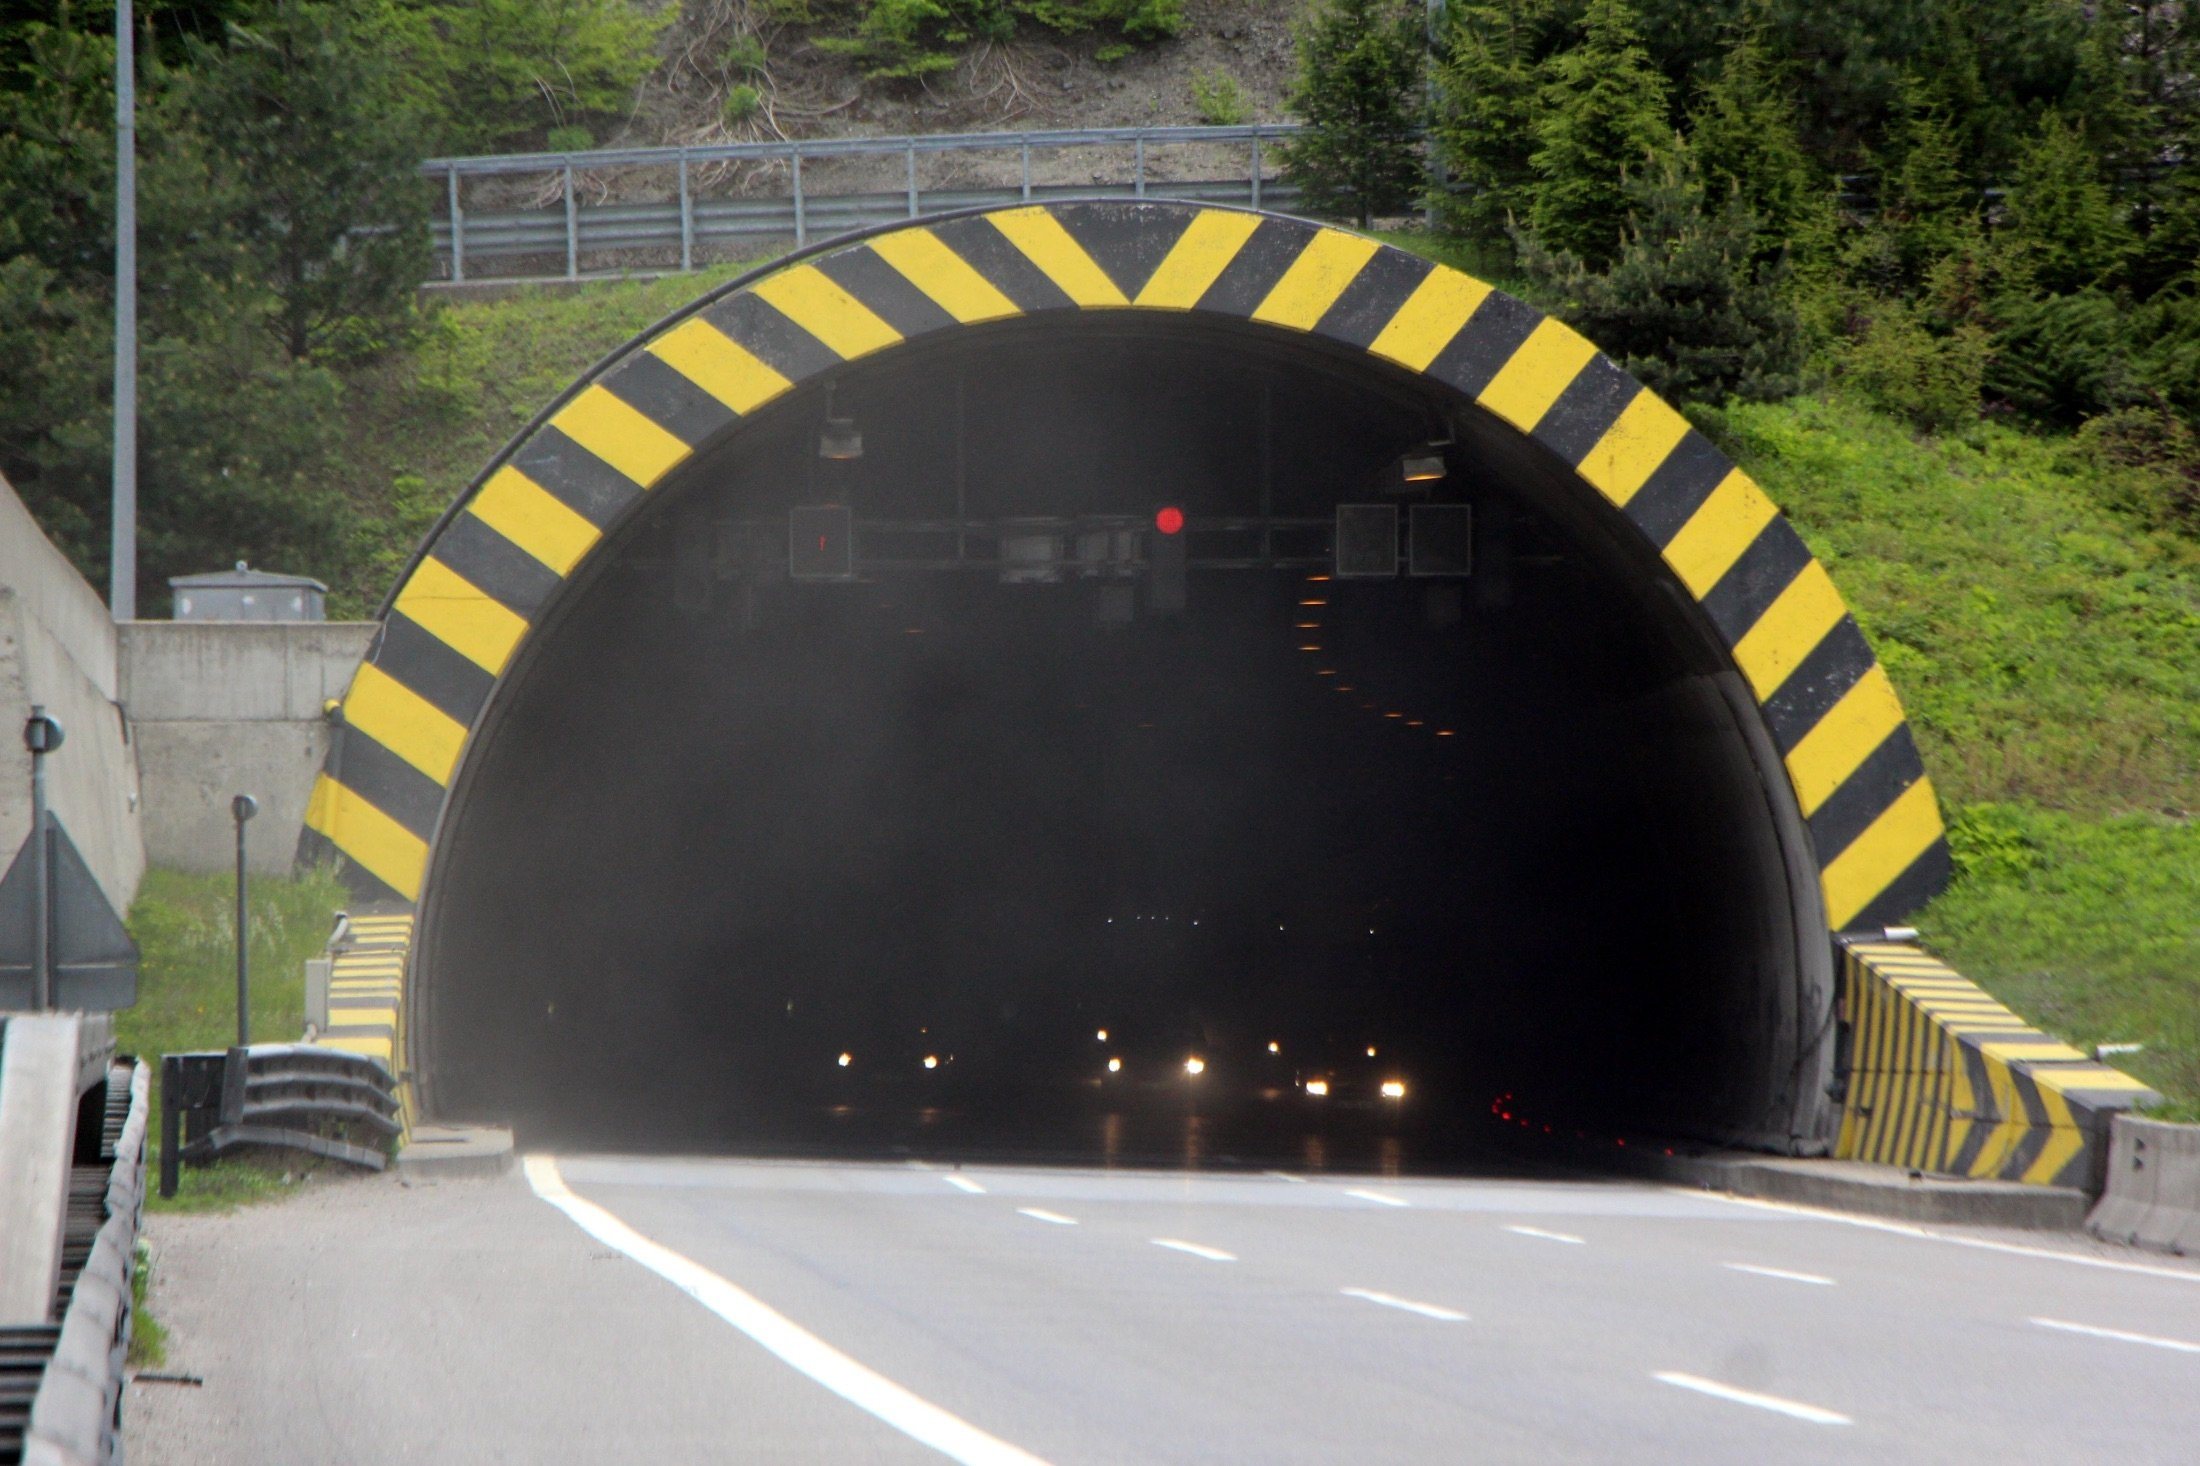 Car headlights are seen emerging from the darkness as they exit the Mount Bolu Tunnel in Bolu, Turkey, May 16, 2021. (DHA Photo)